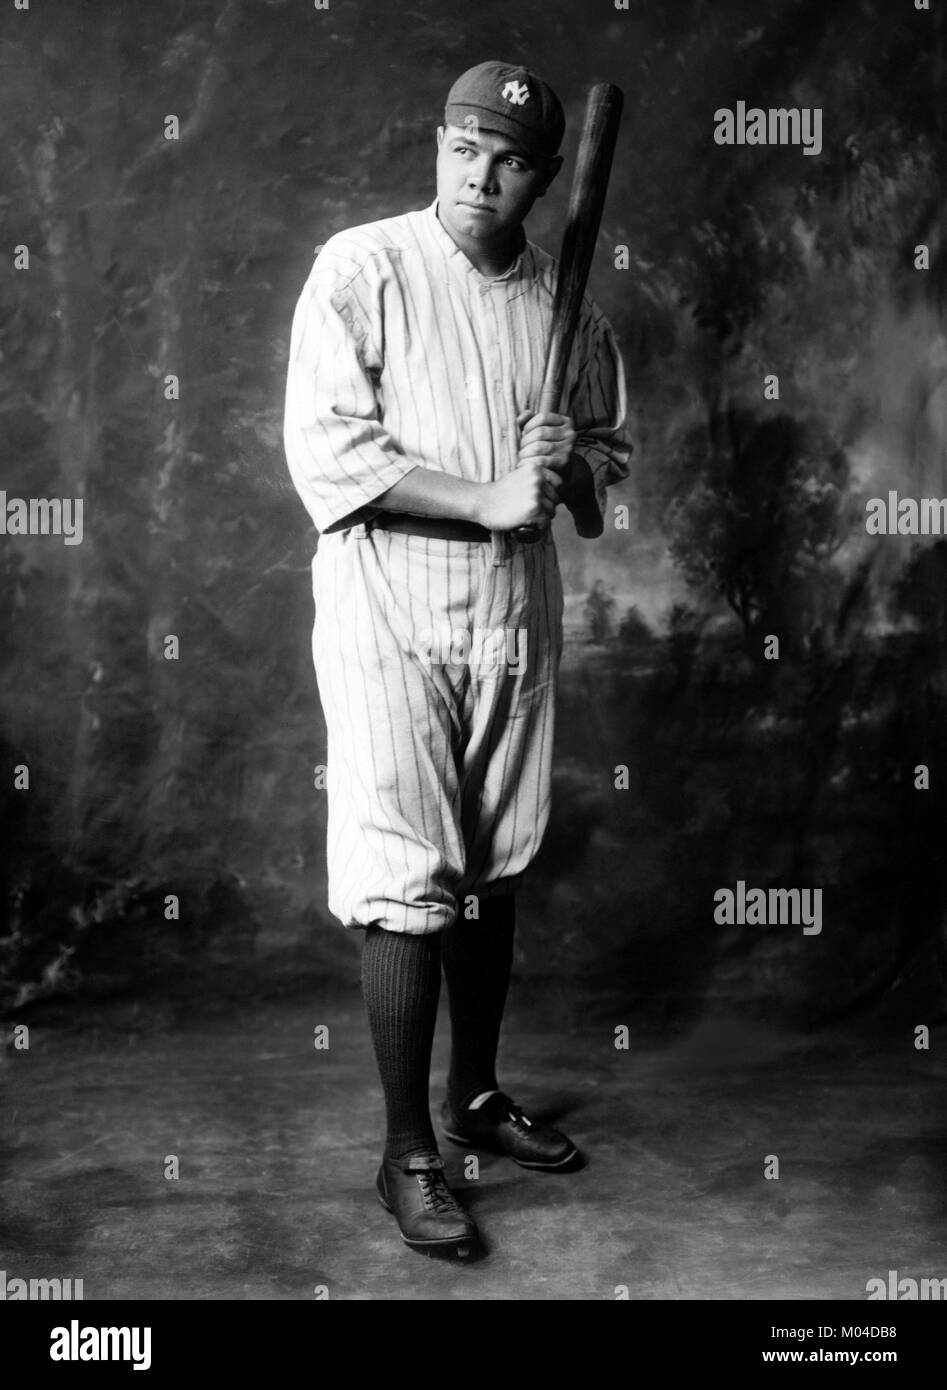 Babe Ruth. Portrait of the American baseball player George Herman 'Babe' Ruth Jr. (1895-1948), c.1920 - Stock Image